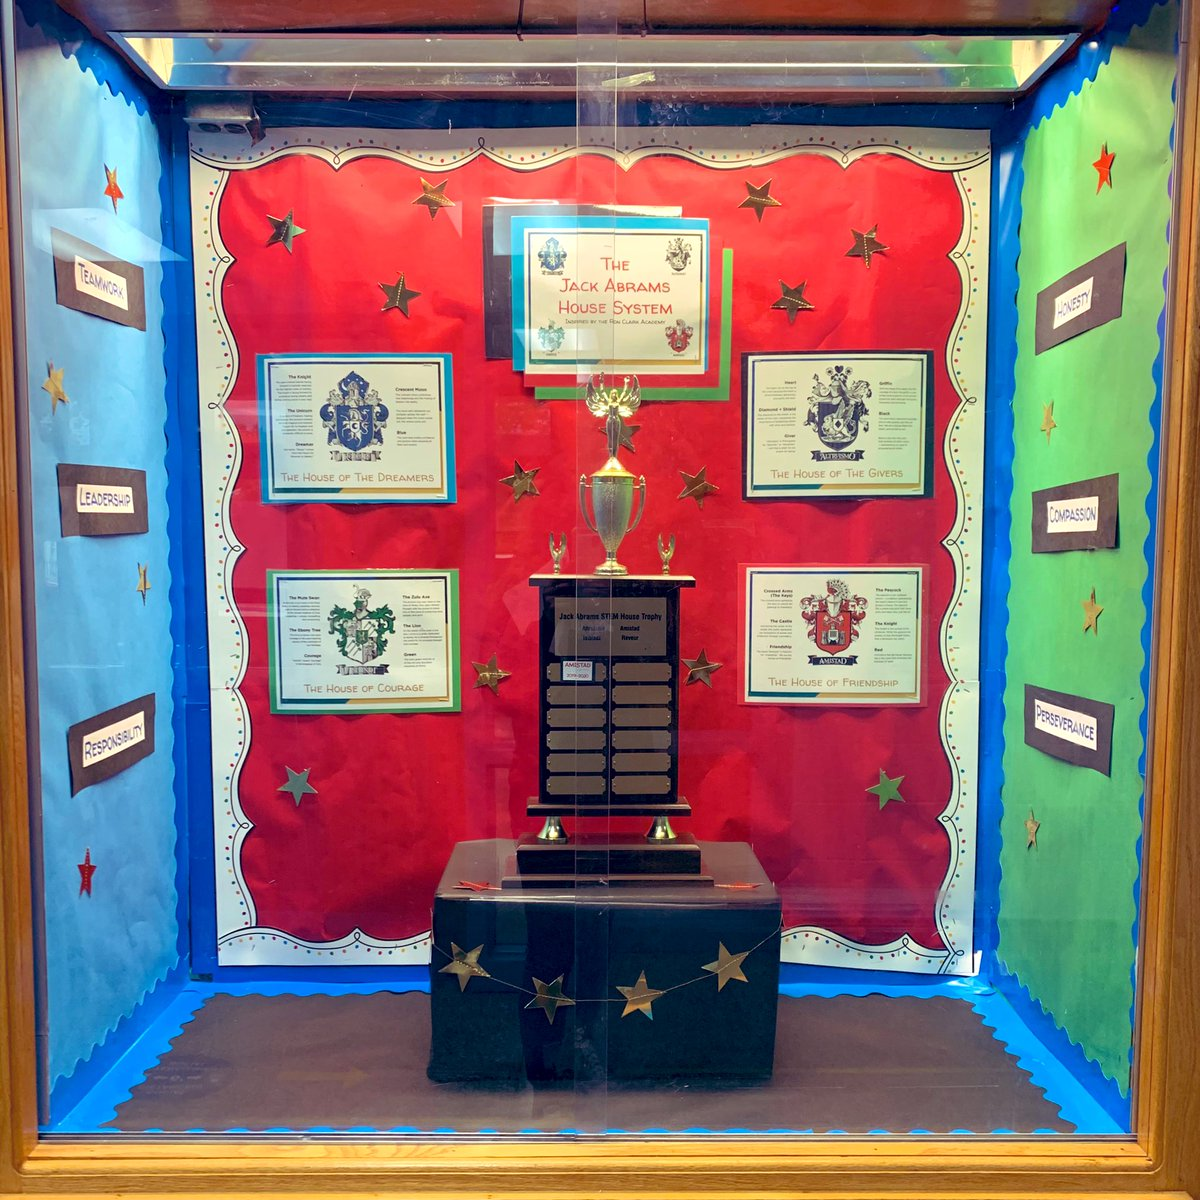 Last school year, #Amistad earned their spot on our house cup as our first-ever house champions. Who will win this year? All fourth graders and new students have been sorted; let the games begin! #thisishufsd https://t.co/ST3IlsZRTa